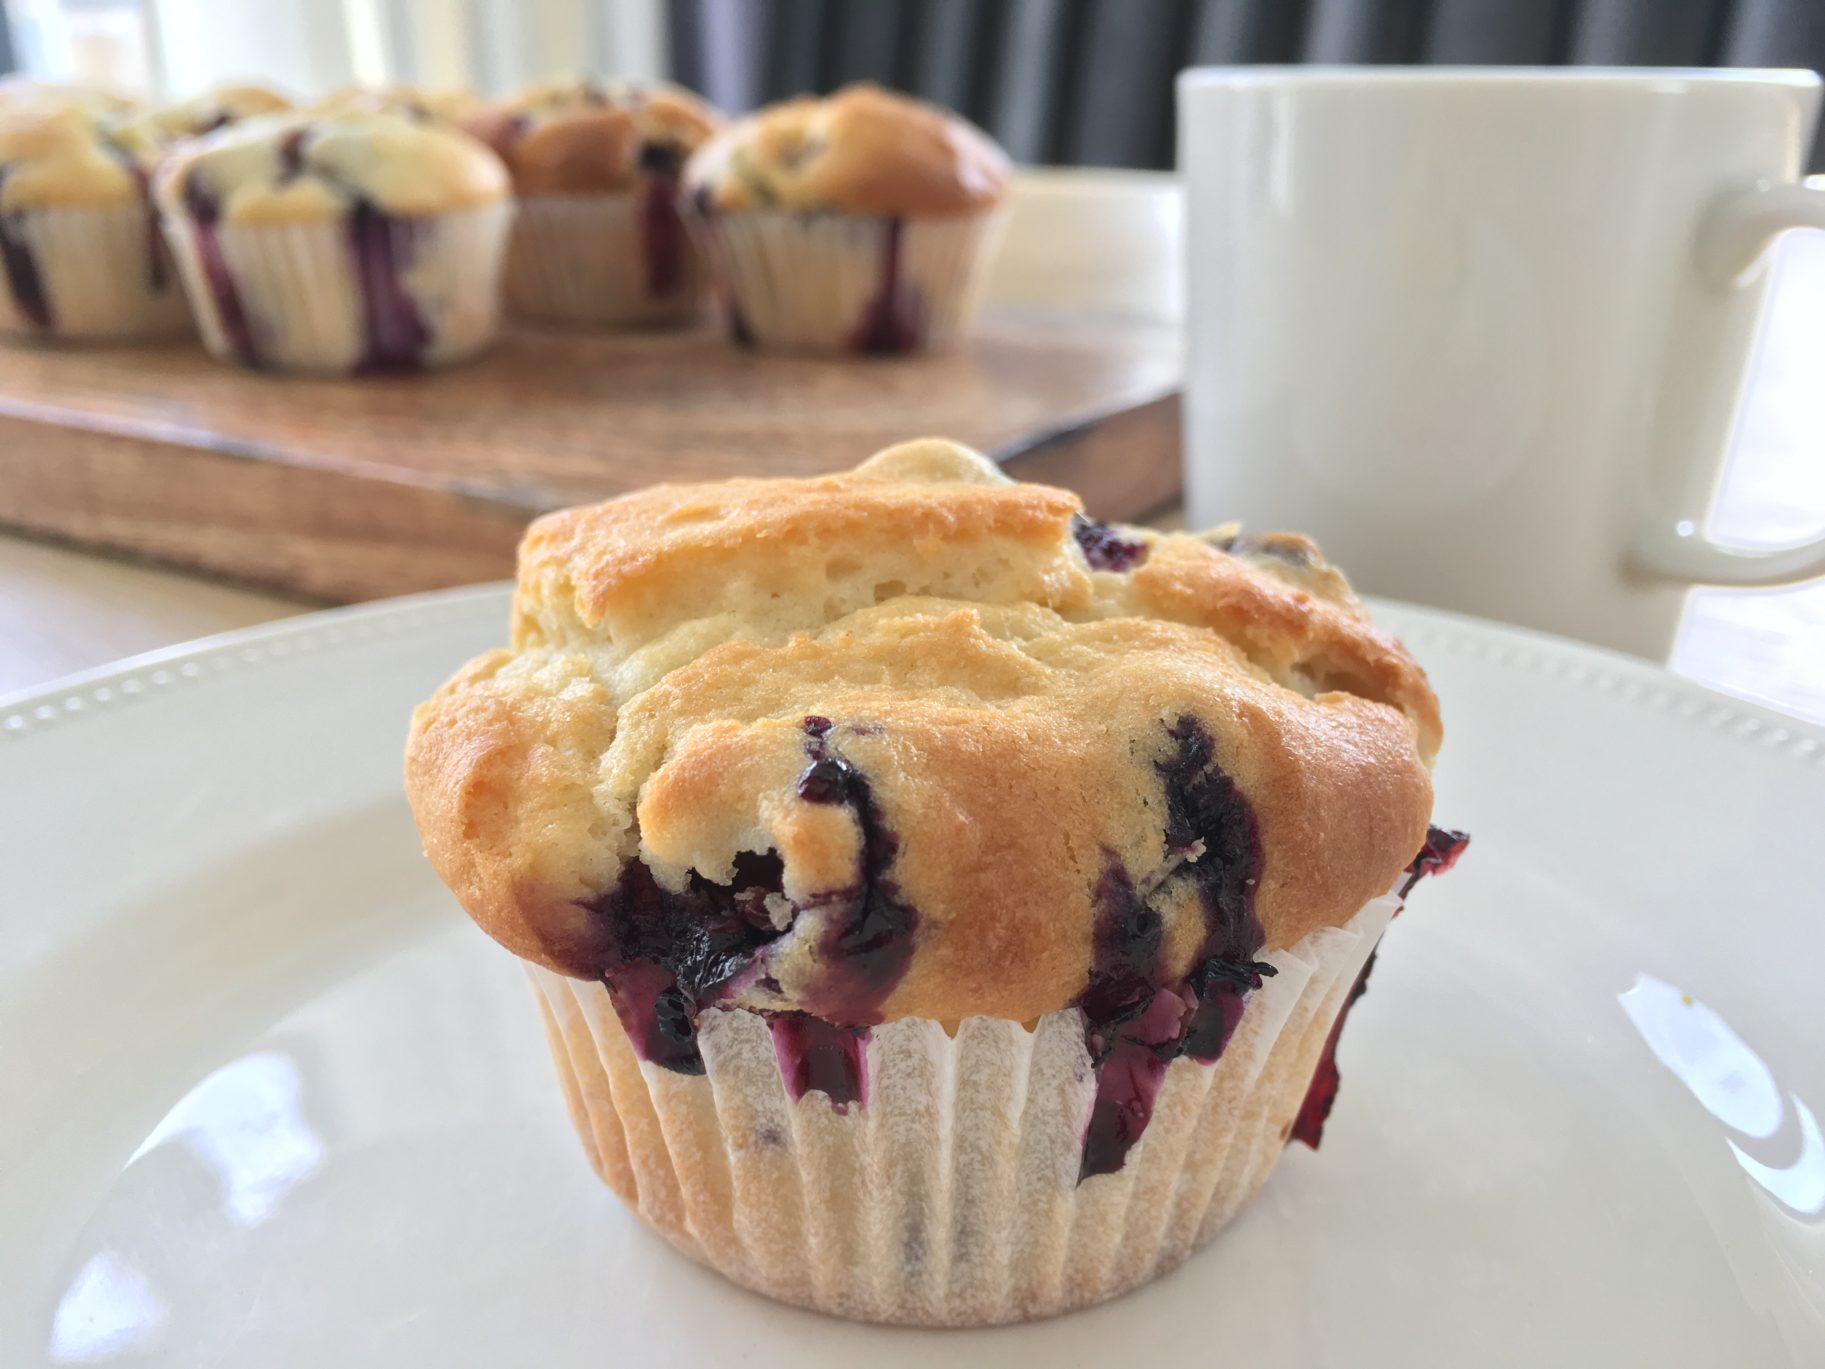 Blueberry Muffin – A Muffin With My Coffee